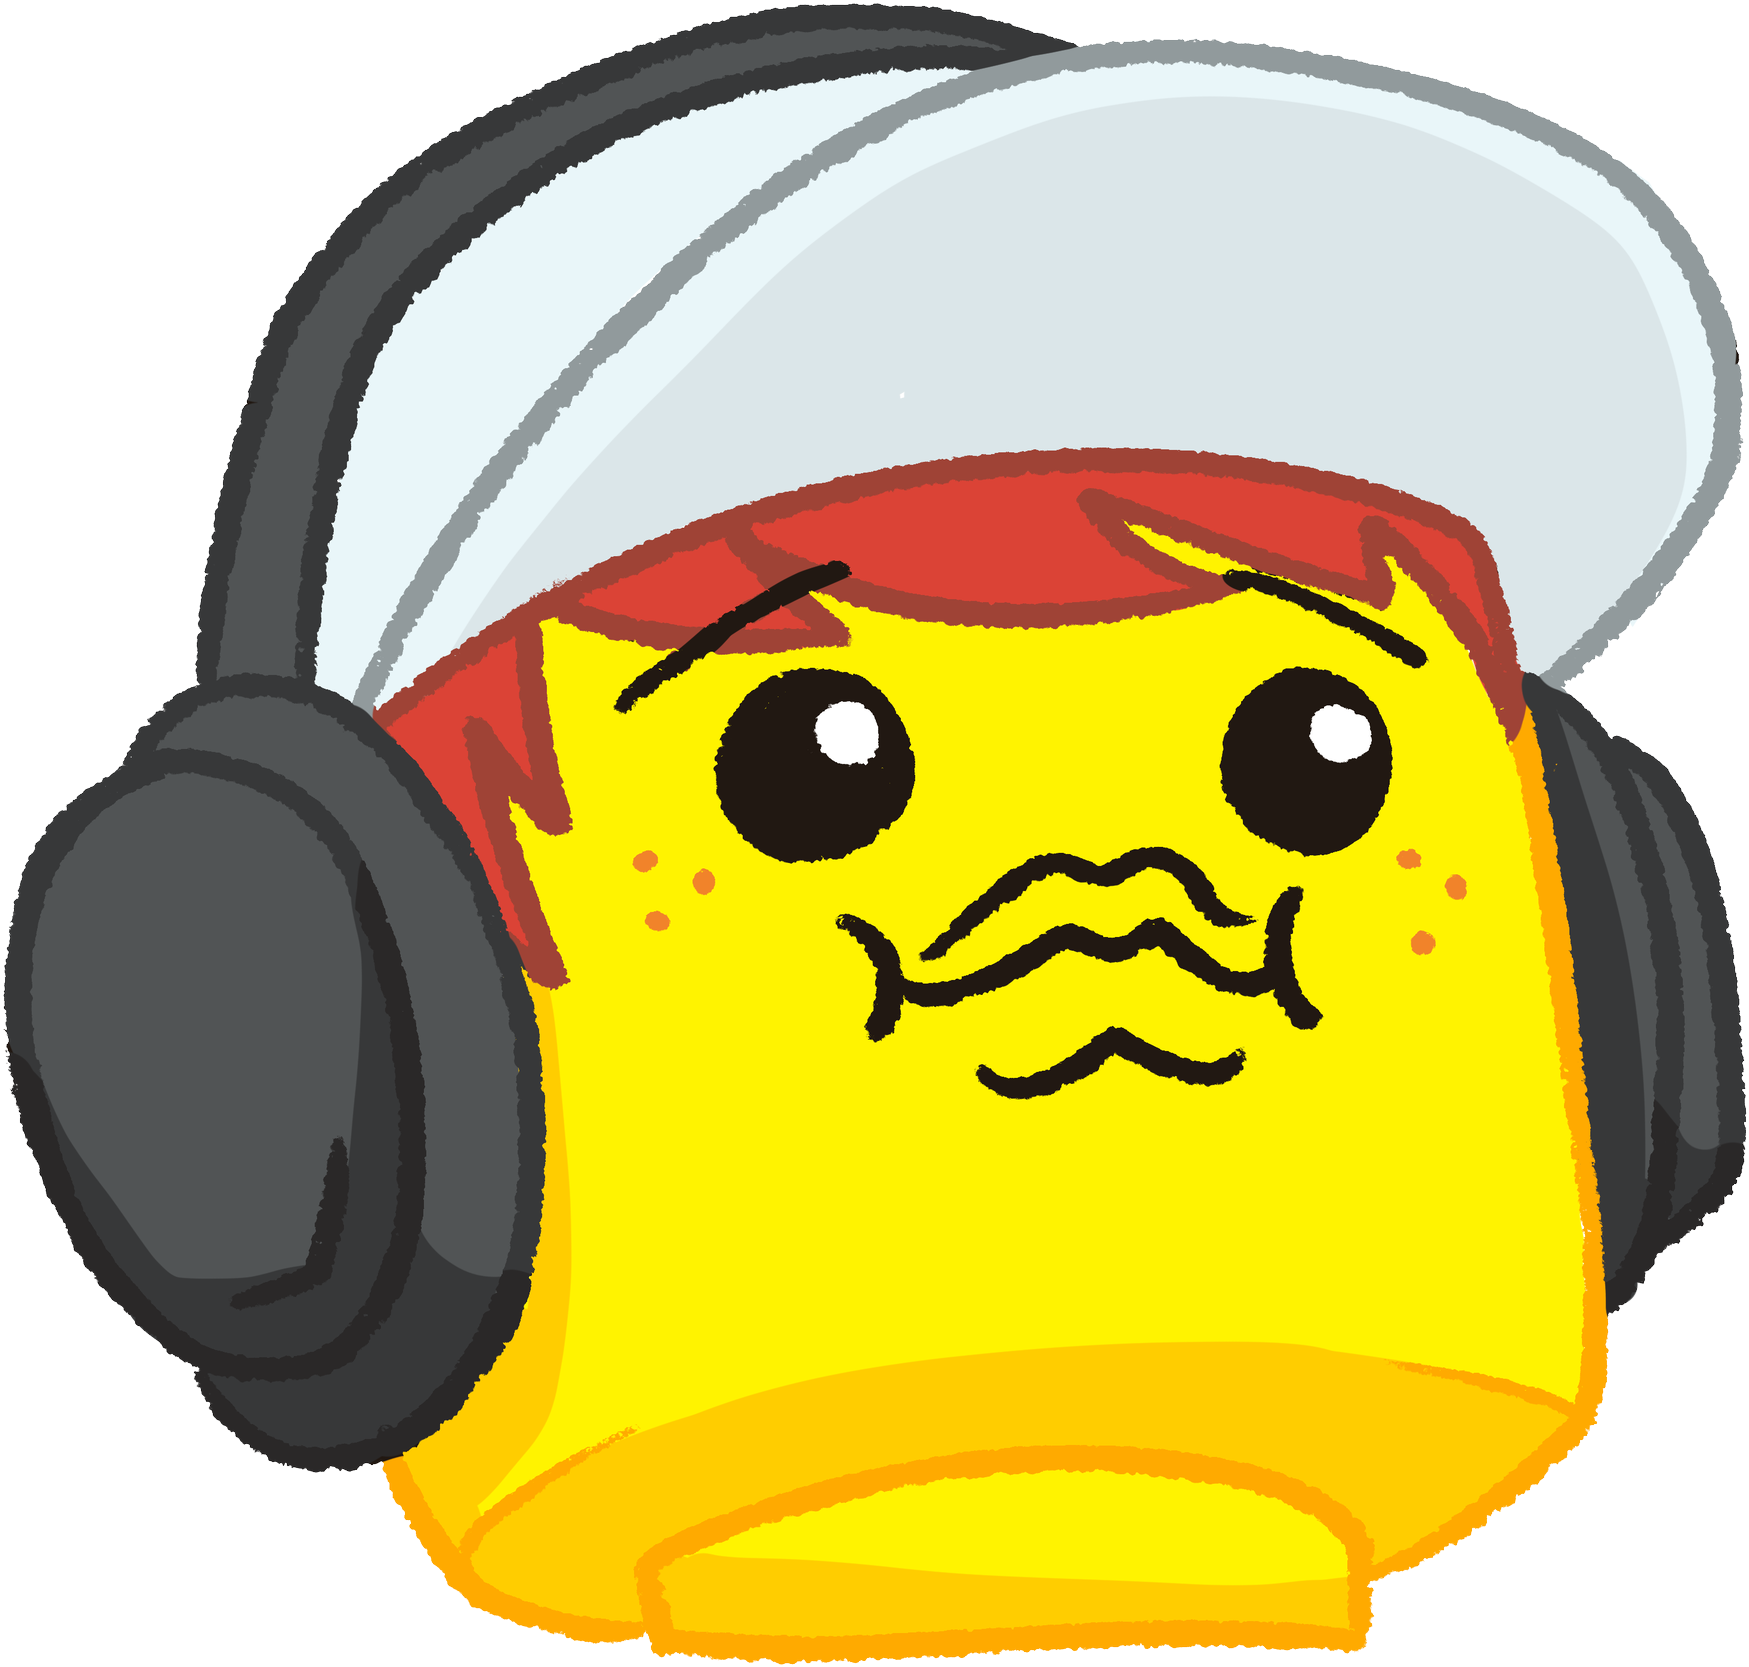 Lego discord emotes png. Headphones clipart comic